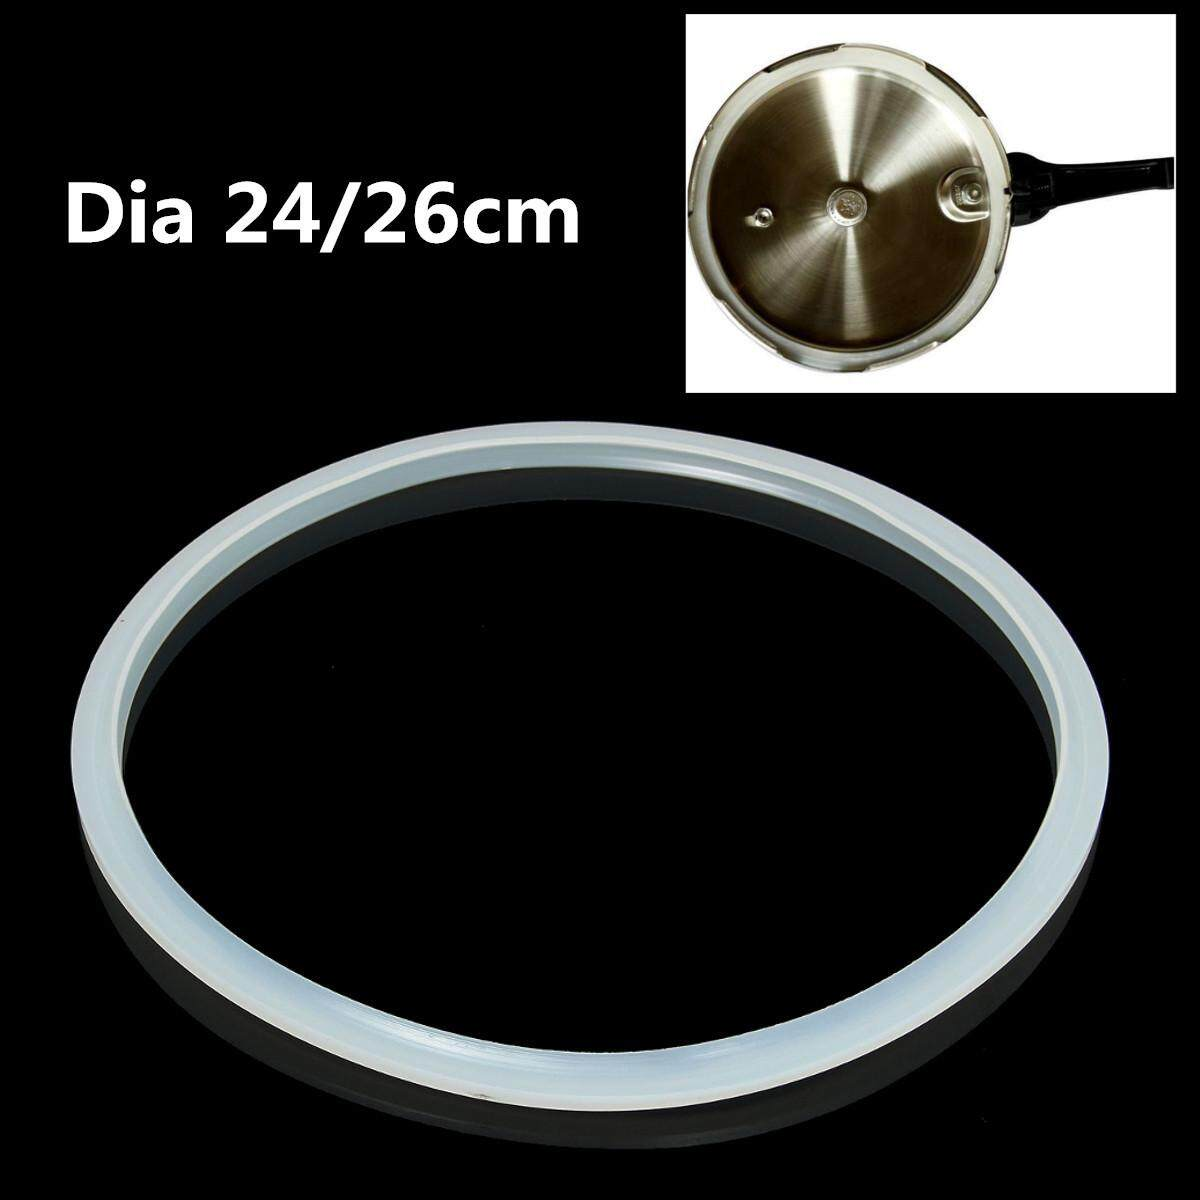 24cm Replacement Silicone Rubber Clear Gasket Sealing Ring Home Pressure Cooker - Intl By Audew.